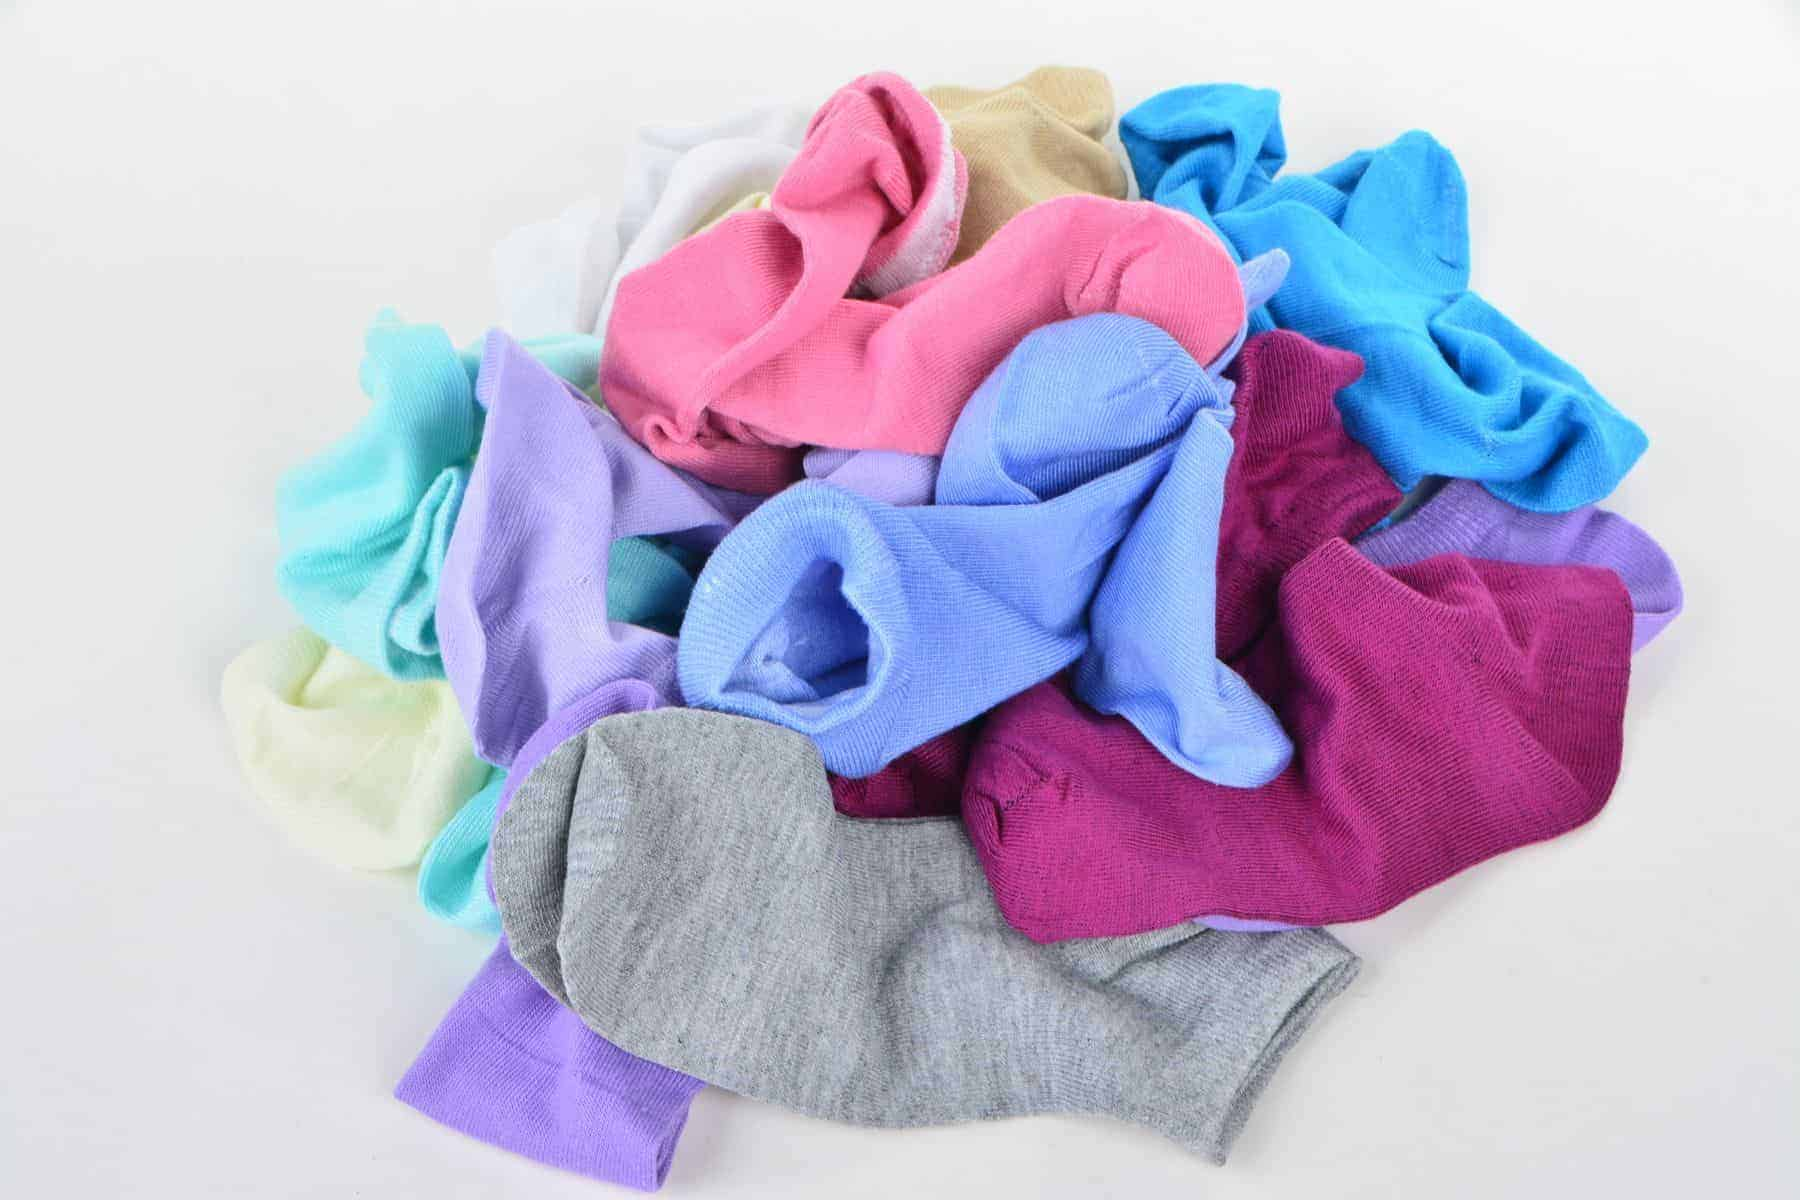 What To Do With Mismatched Socks | ApartmentGuide com